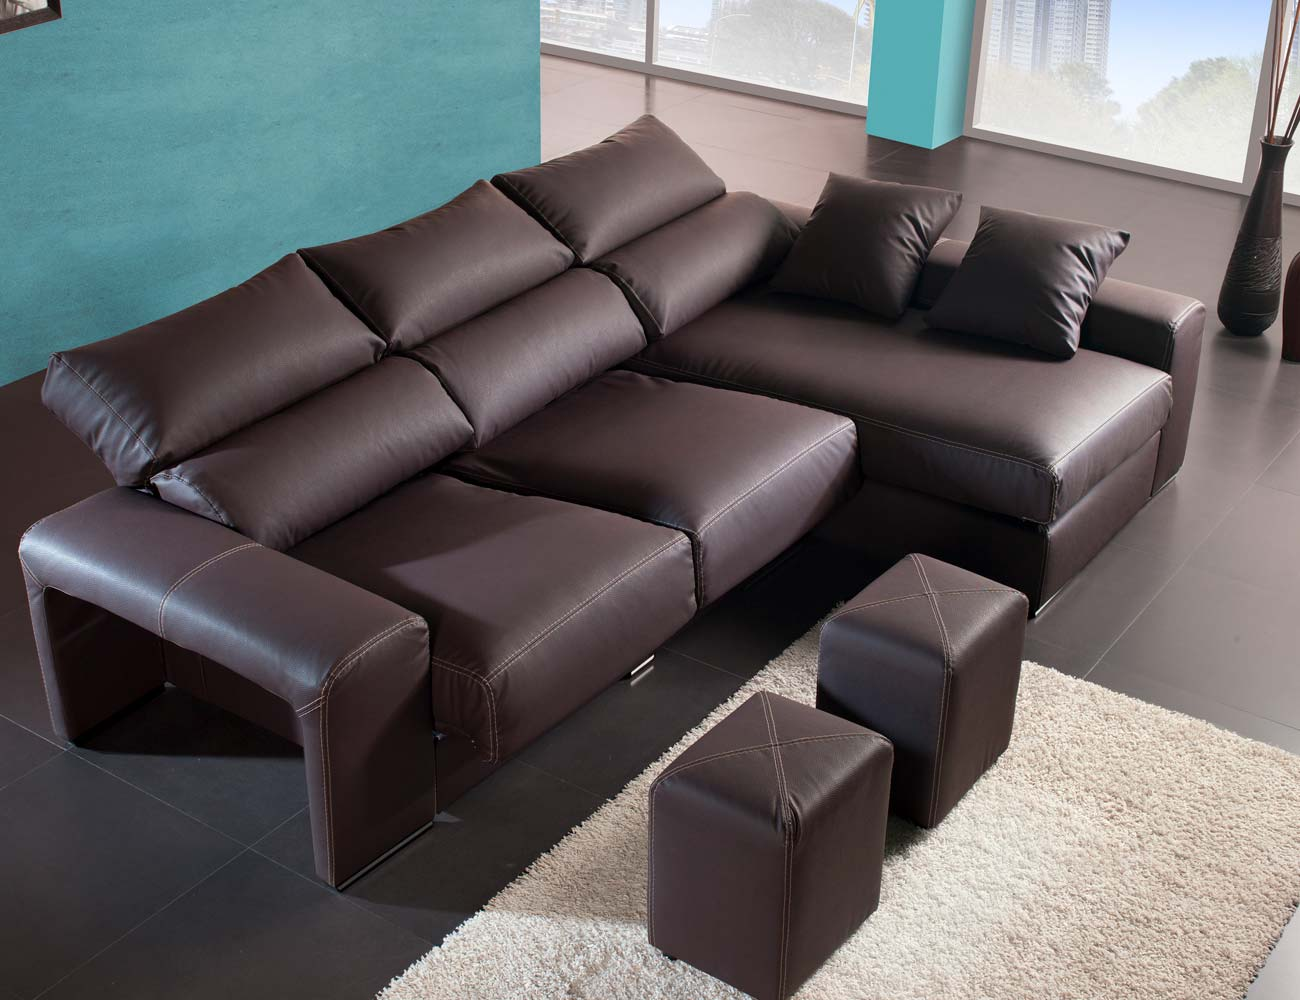 Sofa chaiselongue moderno polipiel chocolate poufs taburetes29